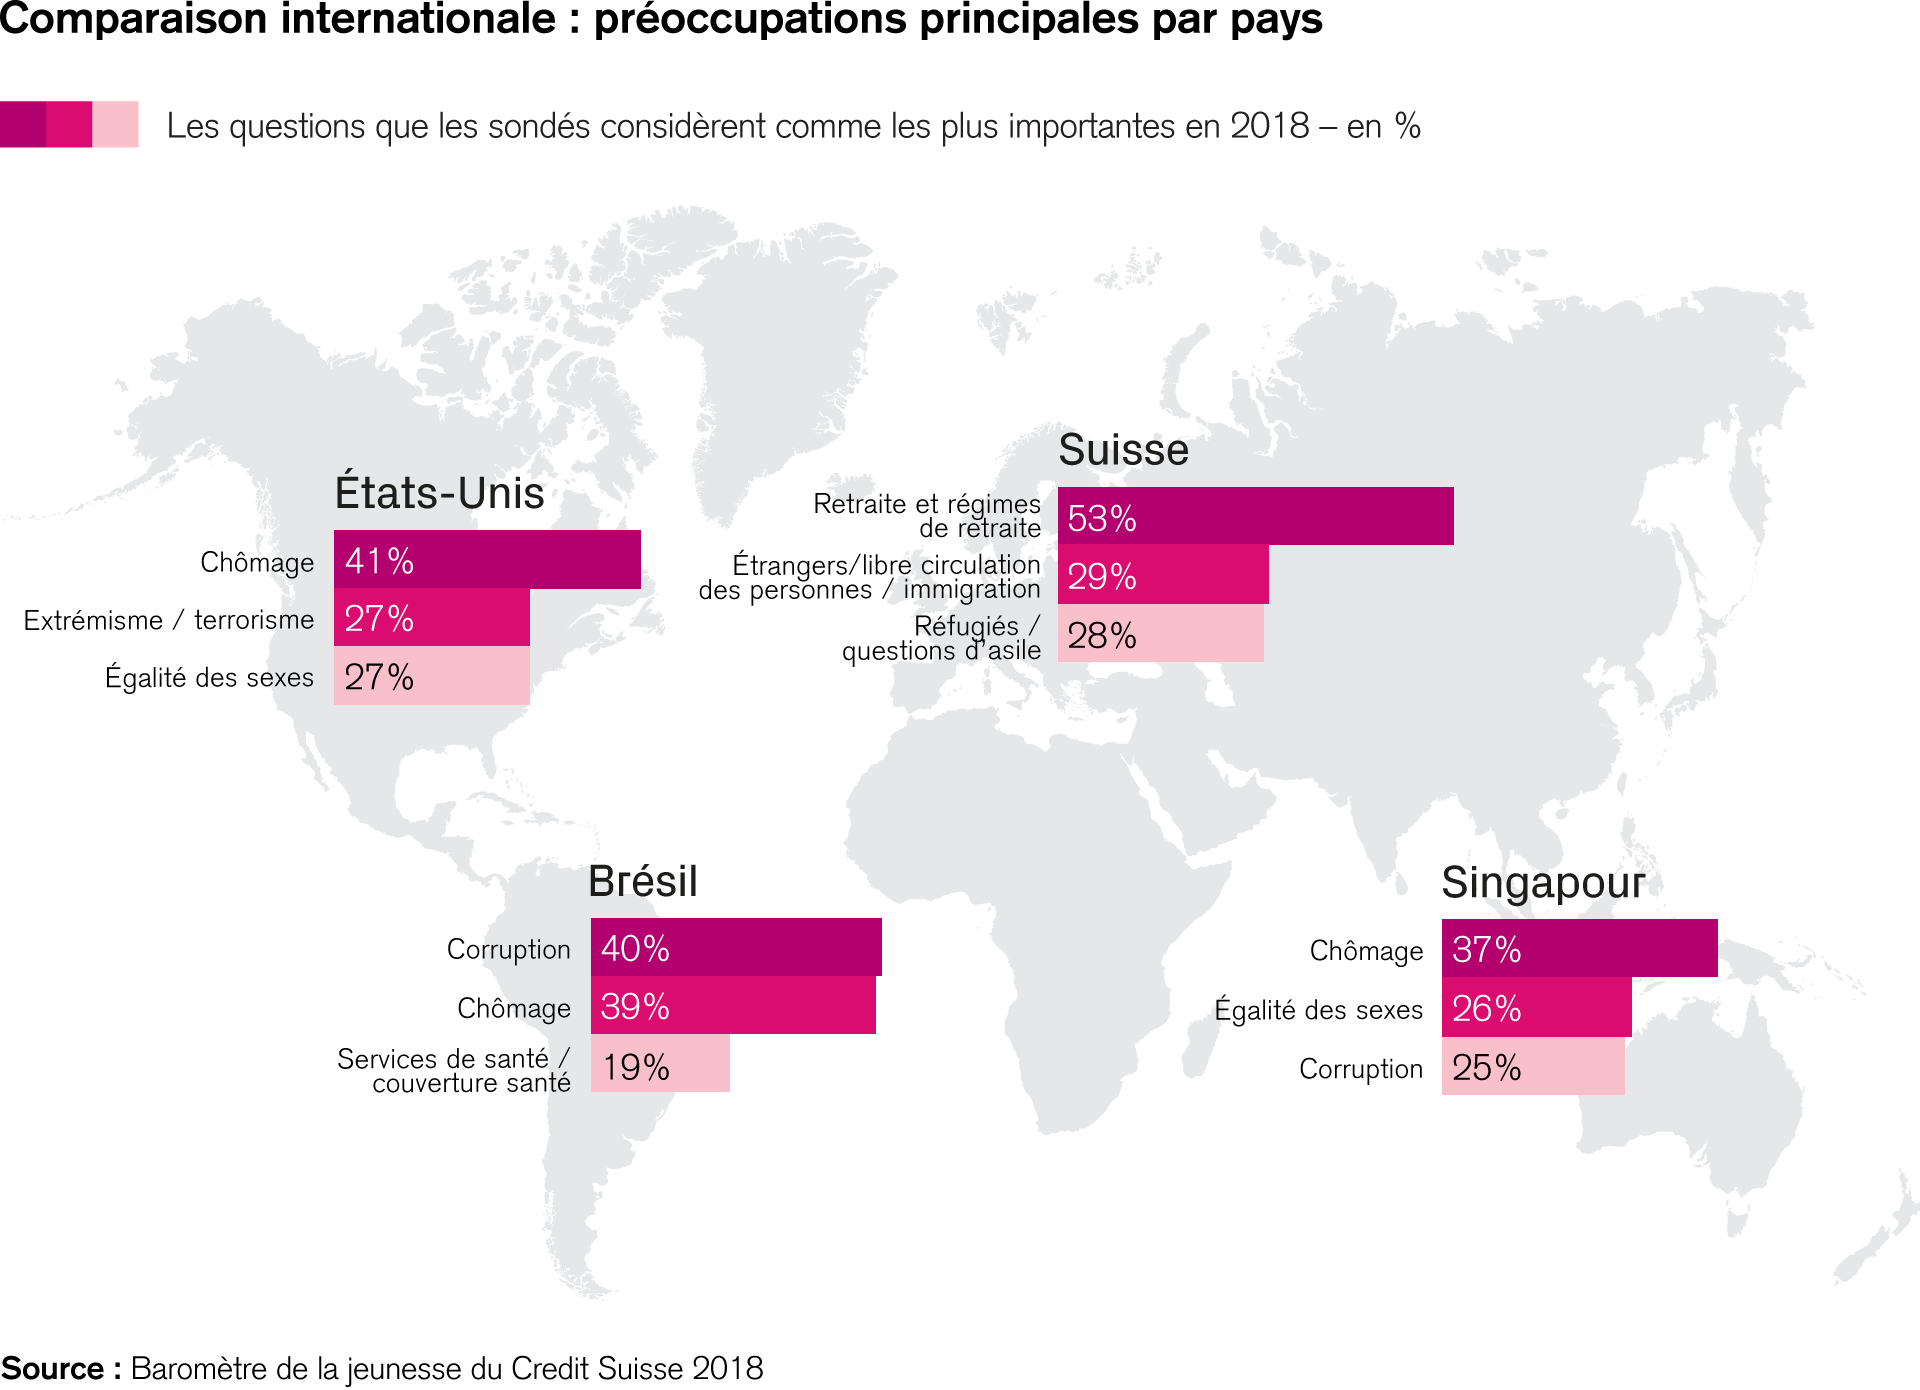 Comparaison internationale : préoccupations principales par pays